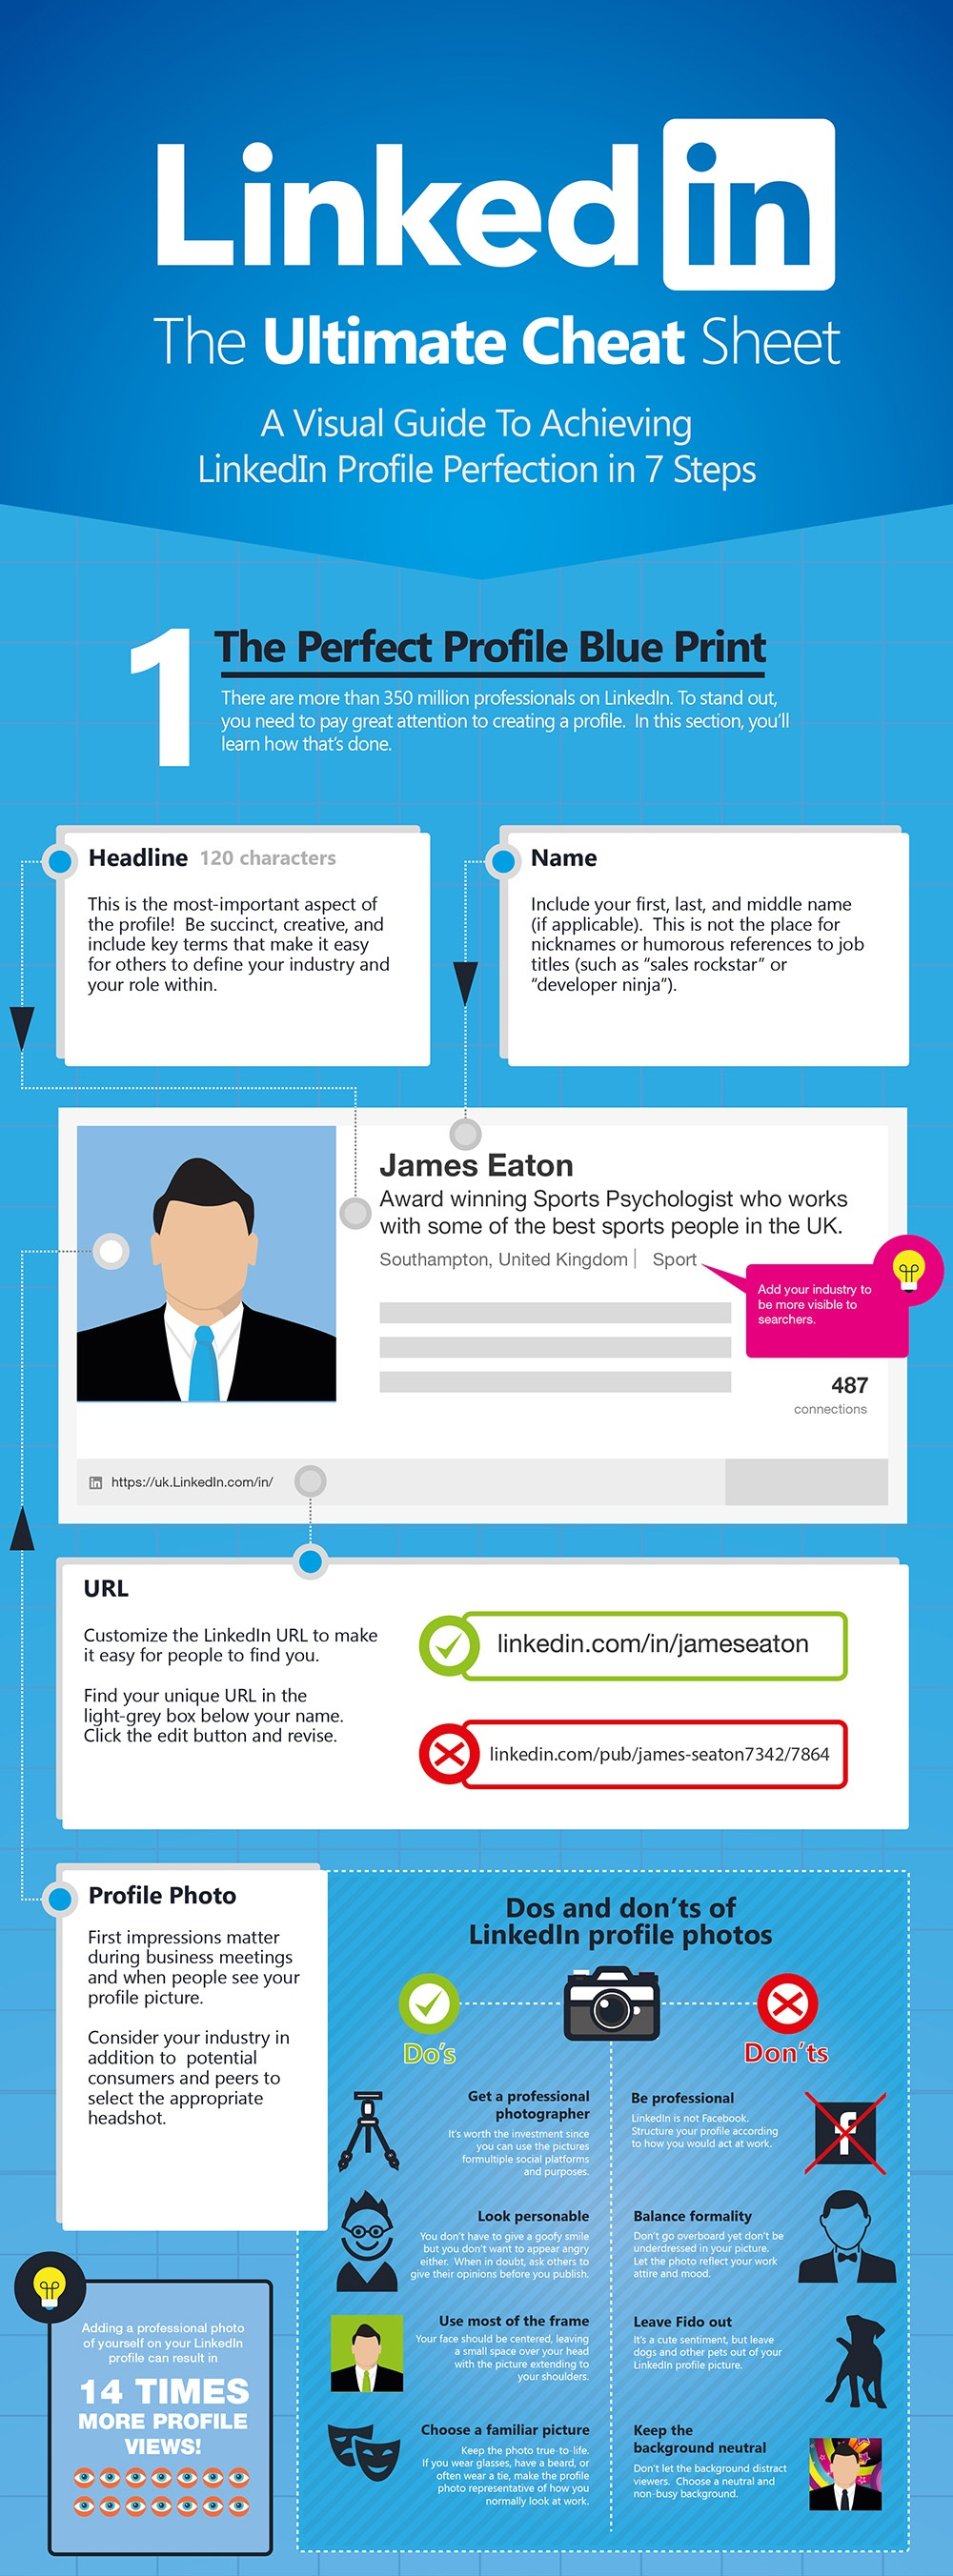 4 Ways to Optimize Your LinkedIn Profile